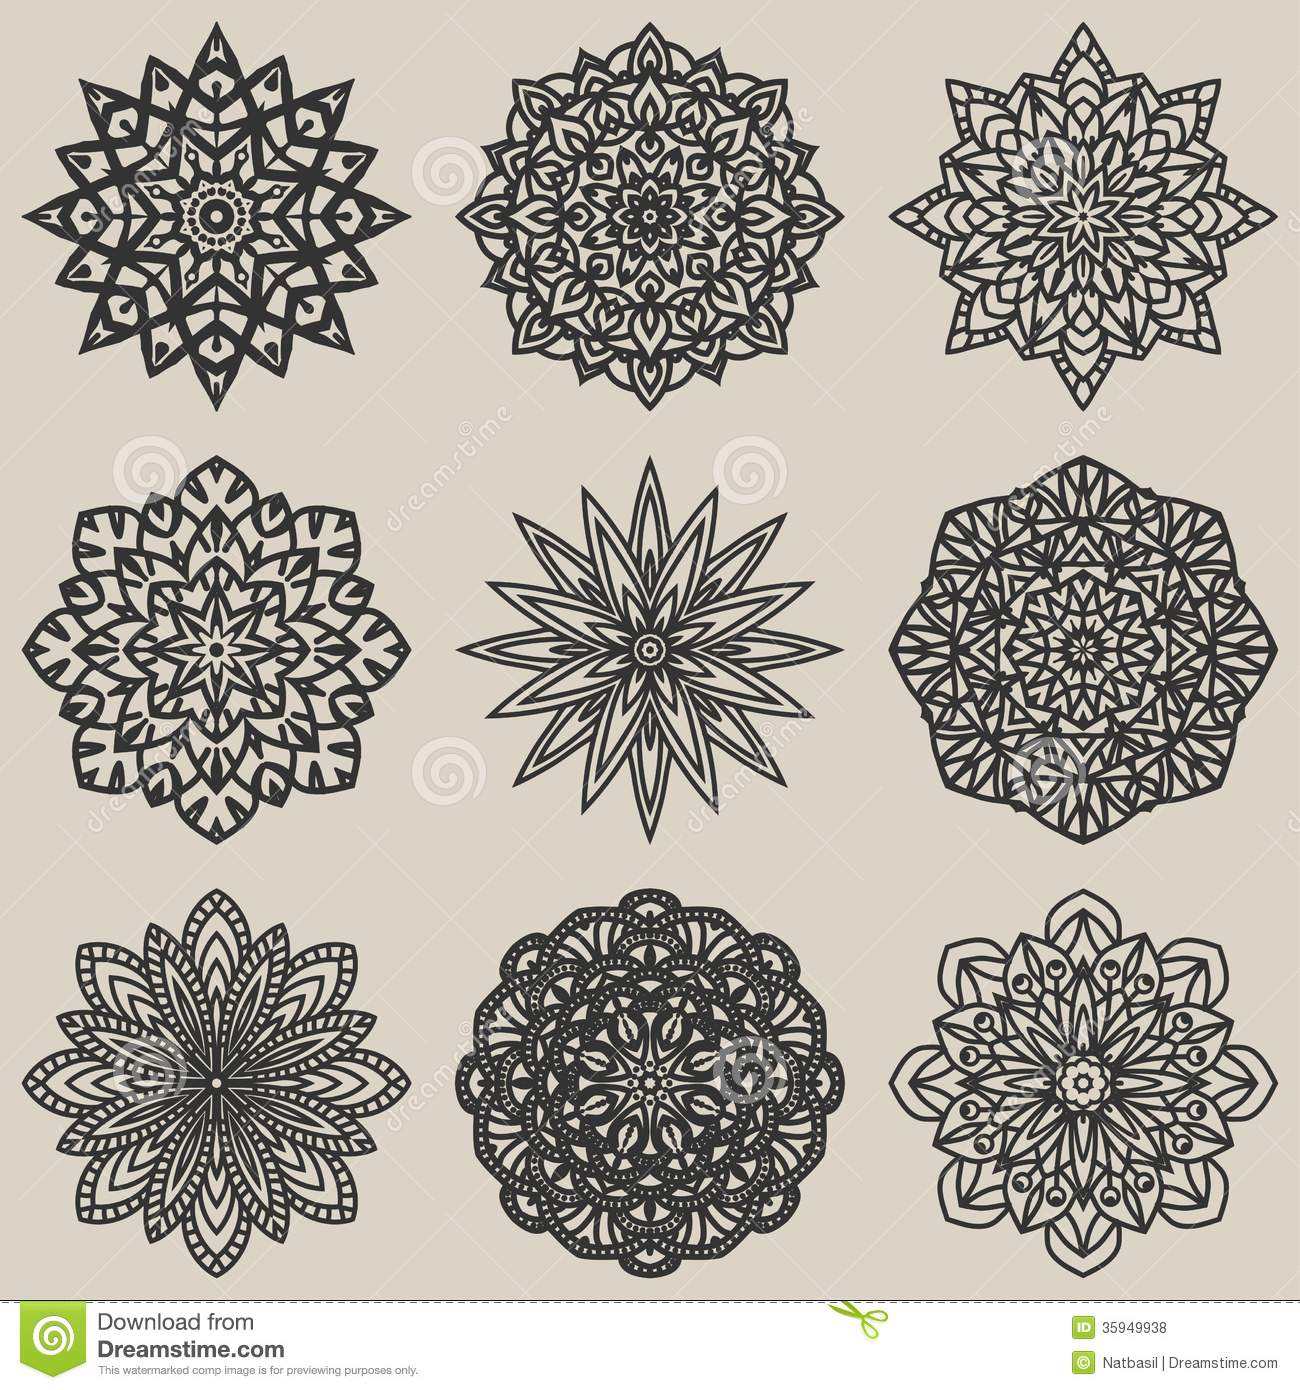 Circular Floral Pattern Set Royalty Free Stock Photos ...